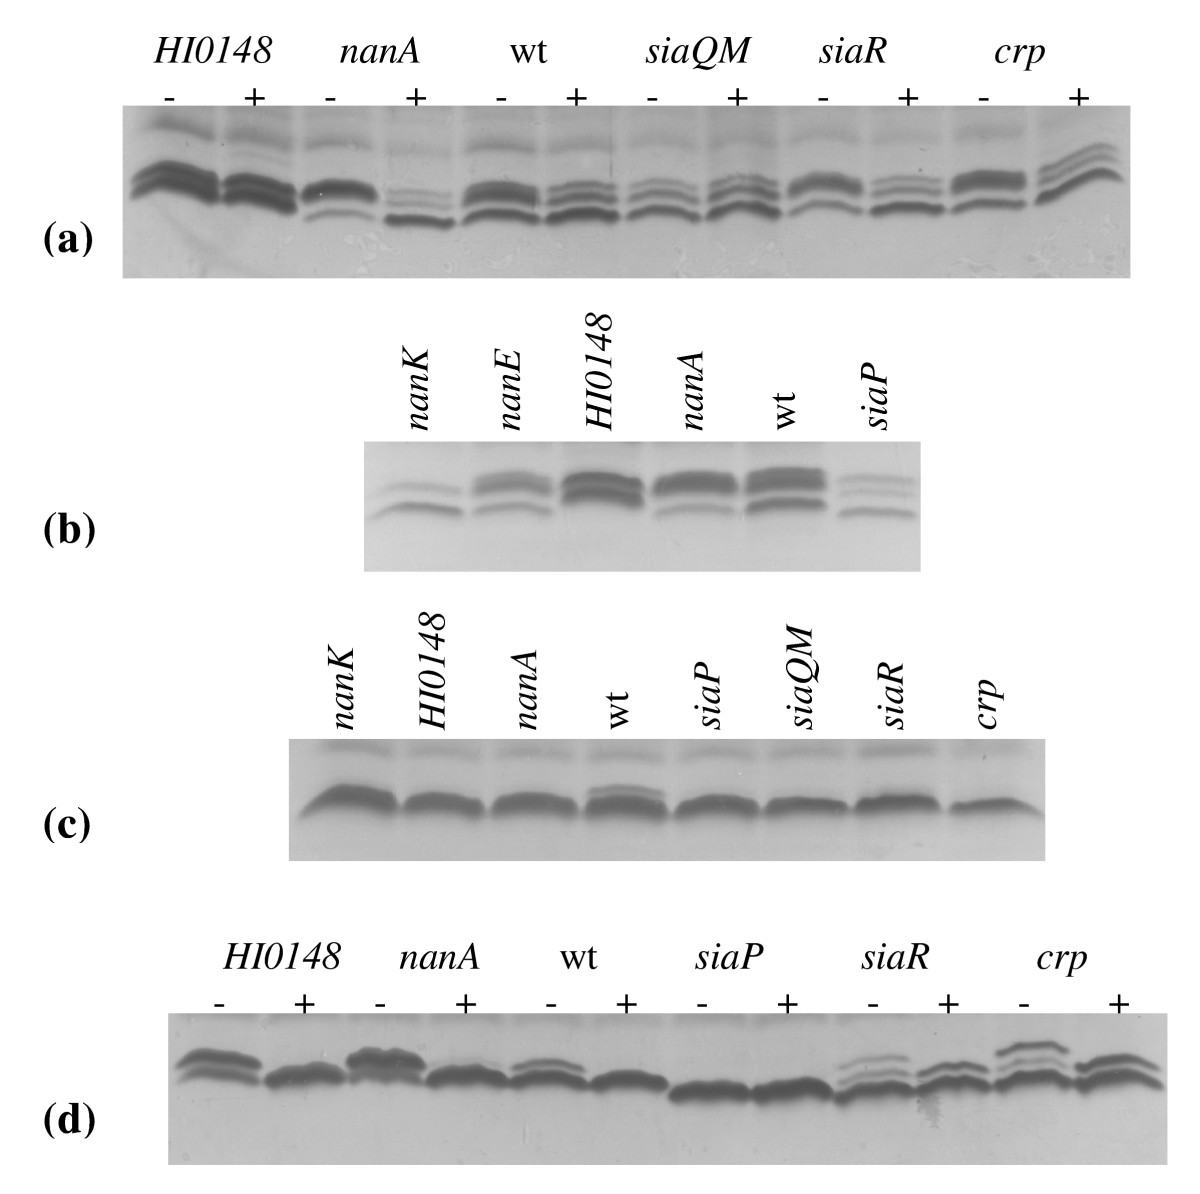 https://static-content.springer.com/image/art%3A10.1186%2F1471-2180-10-48/MediaObjects/12866_2009_Article_1004_Fig2_HTML.jpg